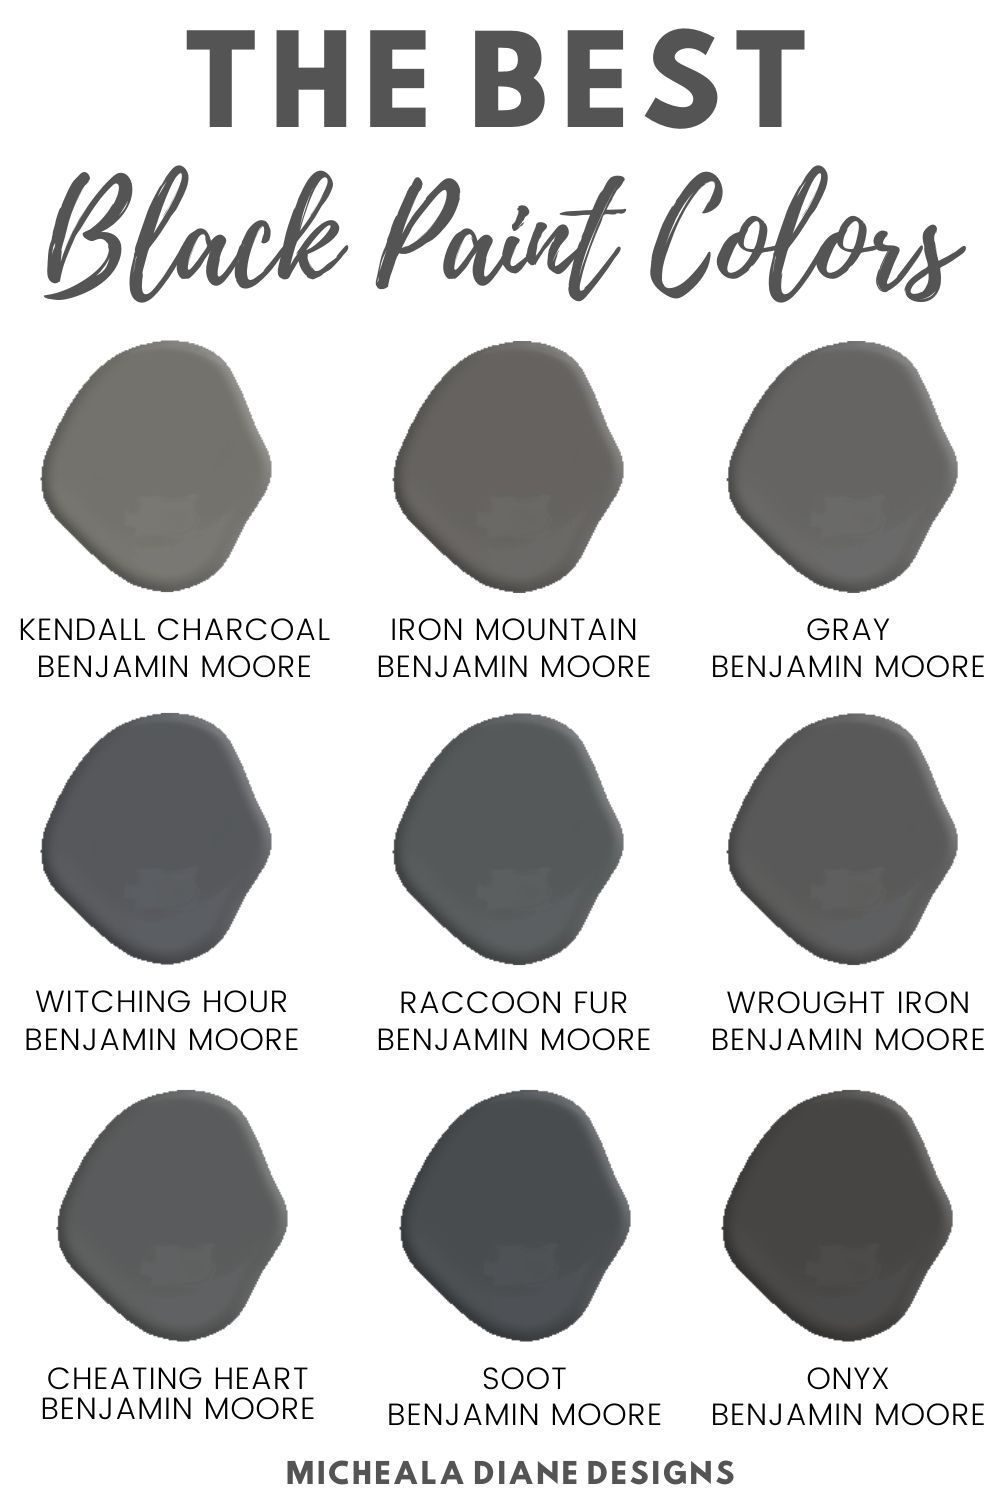 Benjamin Moore Cheating Heart Google Search In 2020 Black Paint Color Paint Colors For Home Paint Colors Benjamin Moore